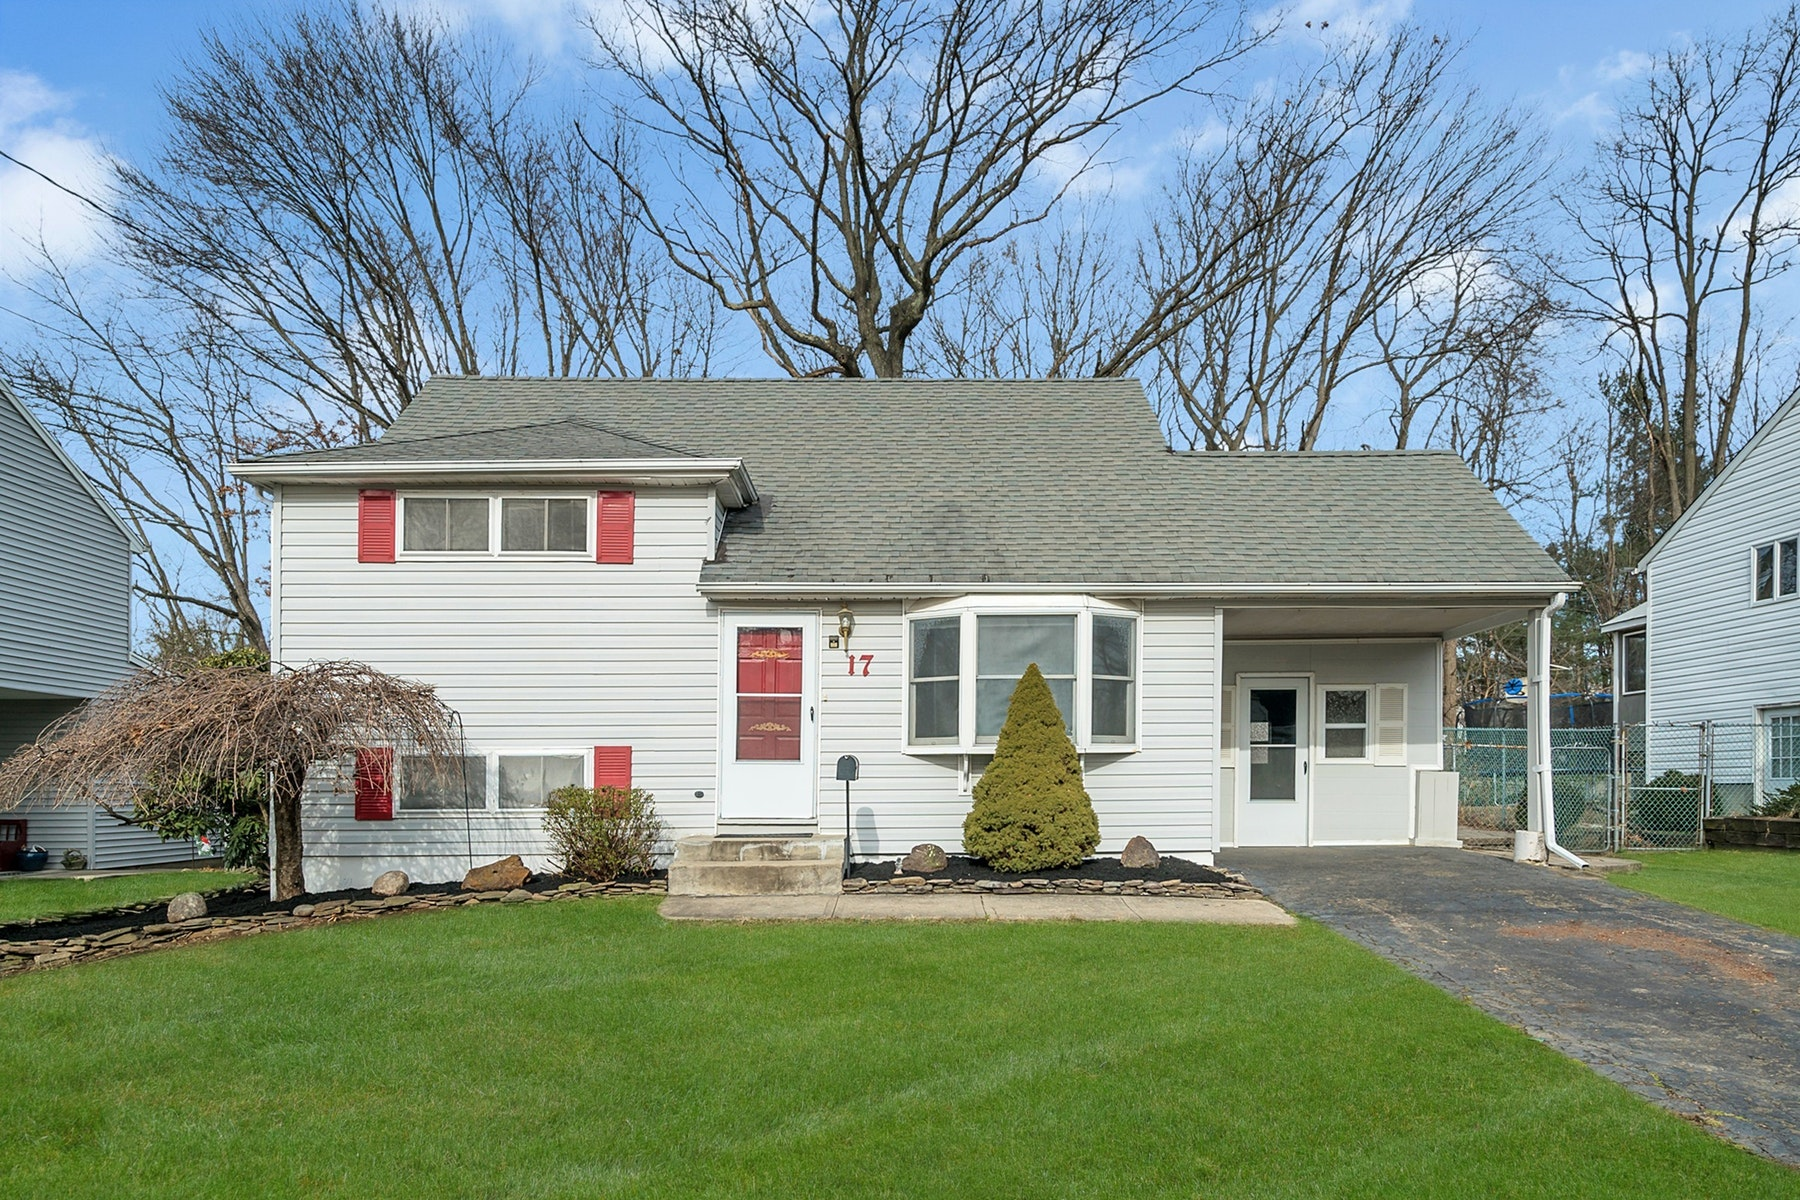 Property for Sale at Unpack and Move In! 17 Shetland Road, East Brunswick Township, New Jersey 08816 United States